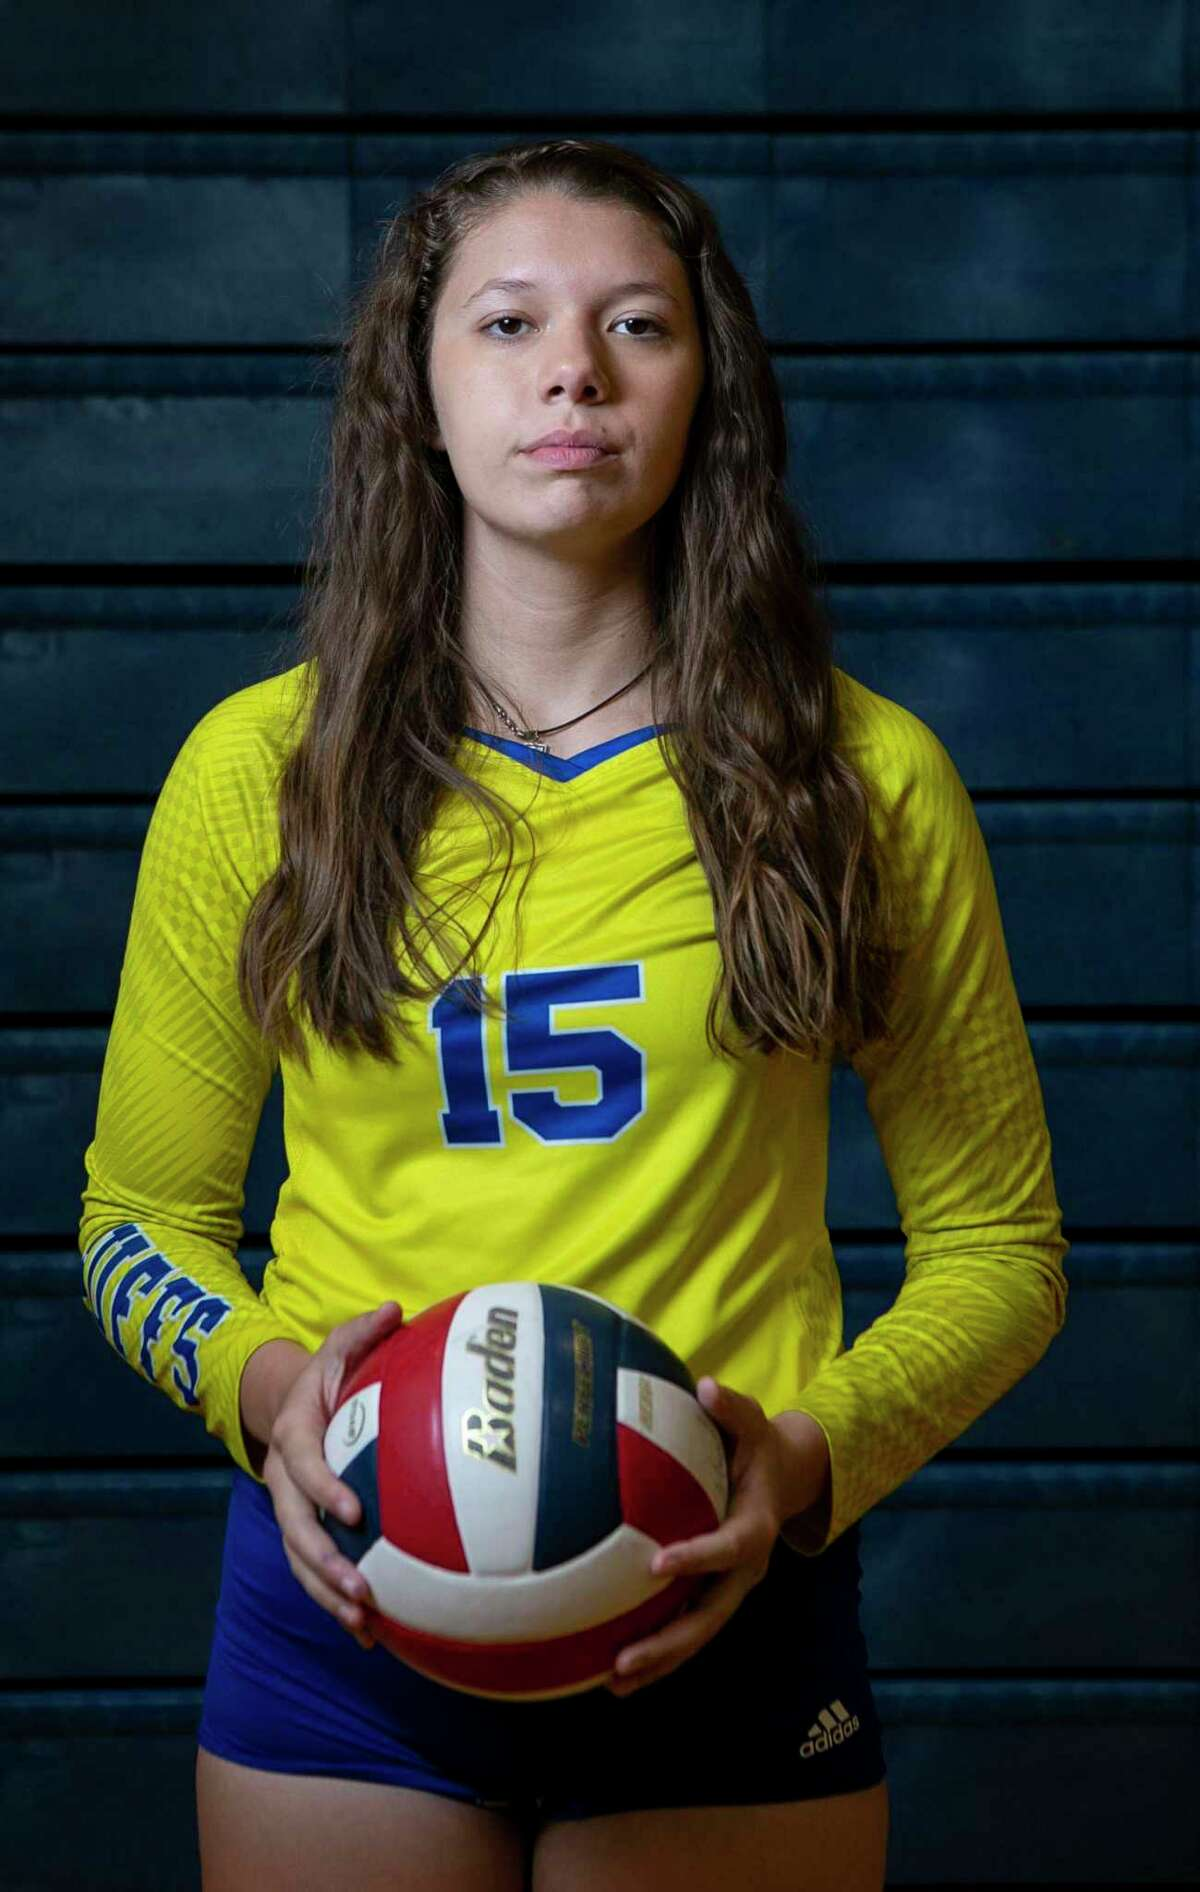 Clemens senior Shelby O'Neal, the 2019 Express-News Volleyball Player of the Year poses in the Clemens High School gymnasium in Schertz, Texas, on Dec. 17, 2019.